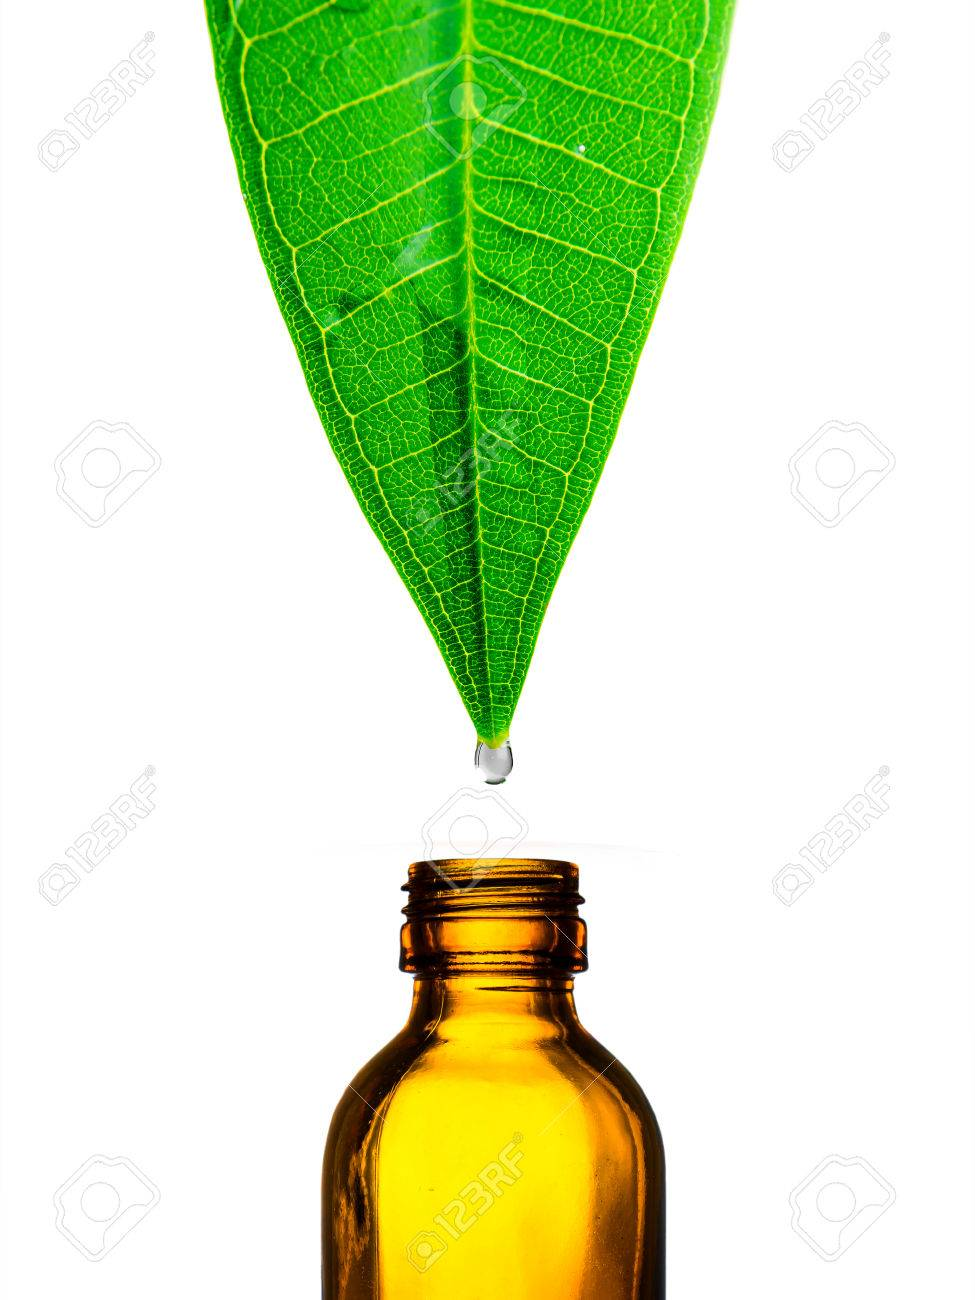 Herbal alternative medicine water drop falling down from a leaf to the bottle - 40922839